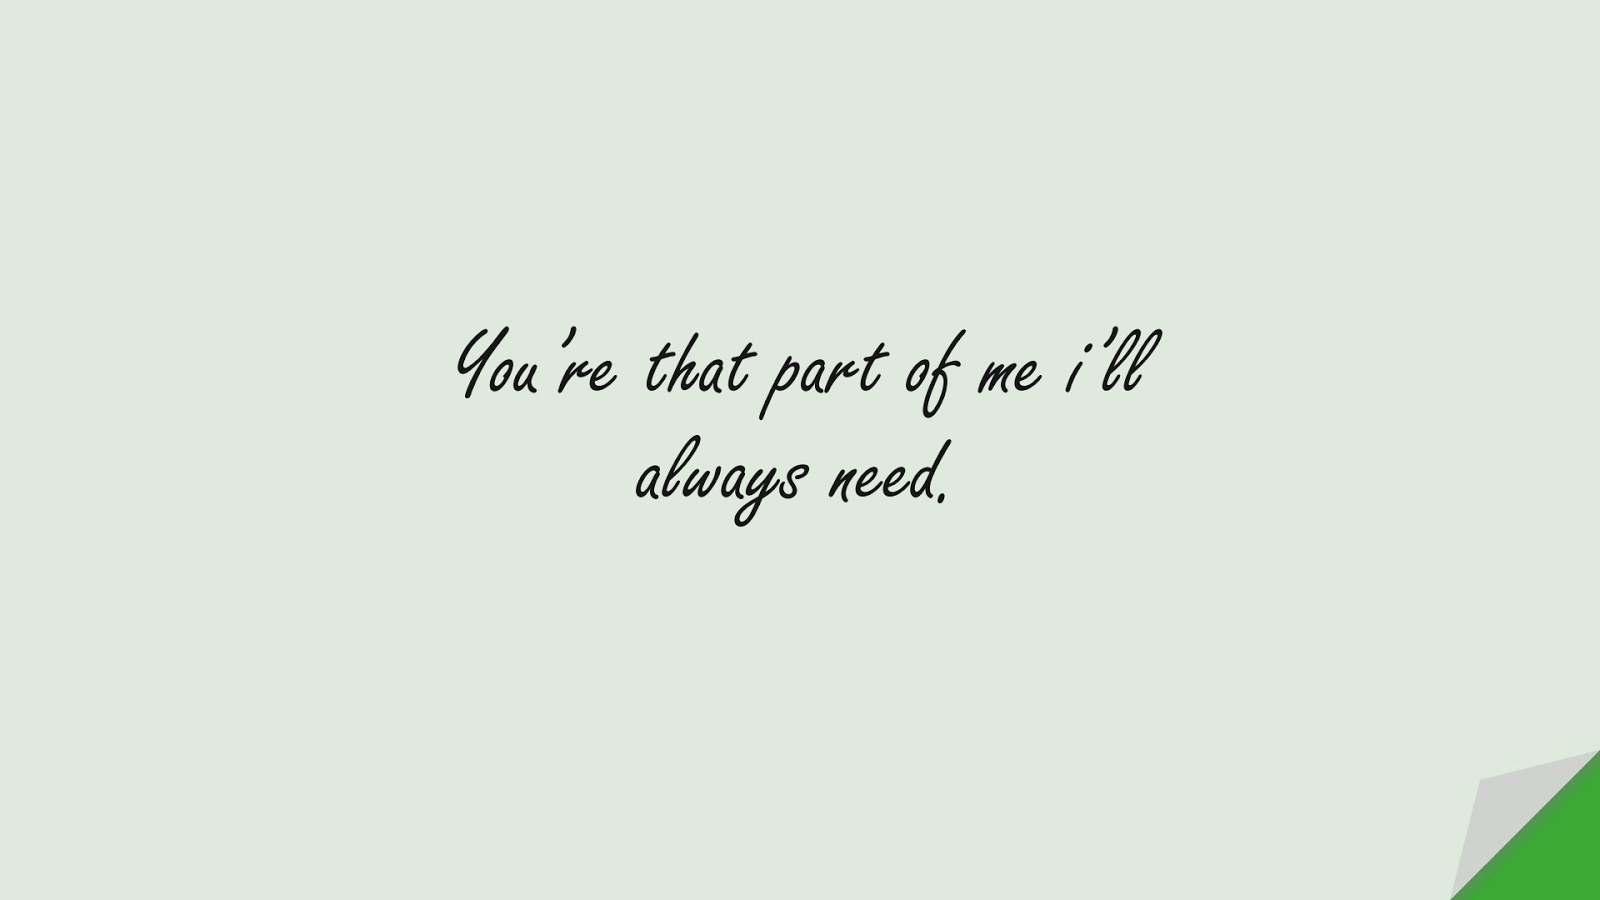 You're that part of me i'll always need.FALSE